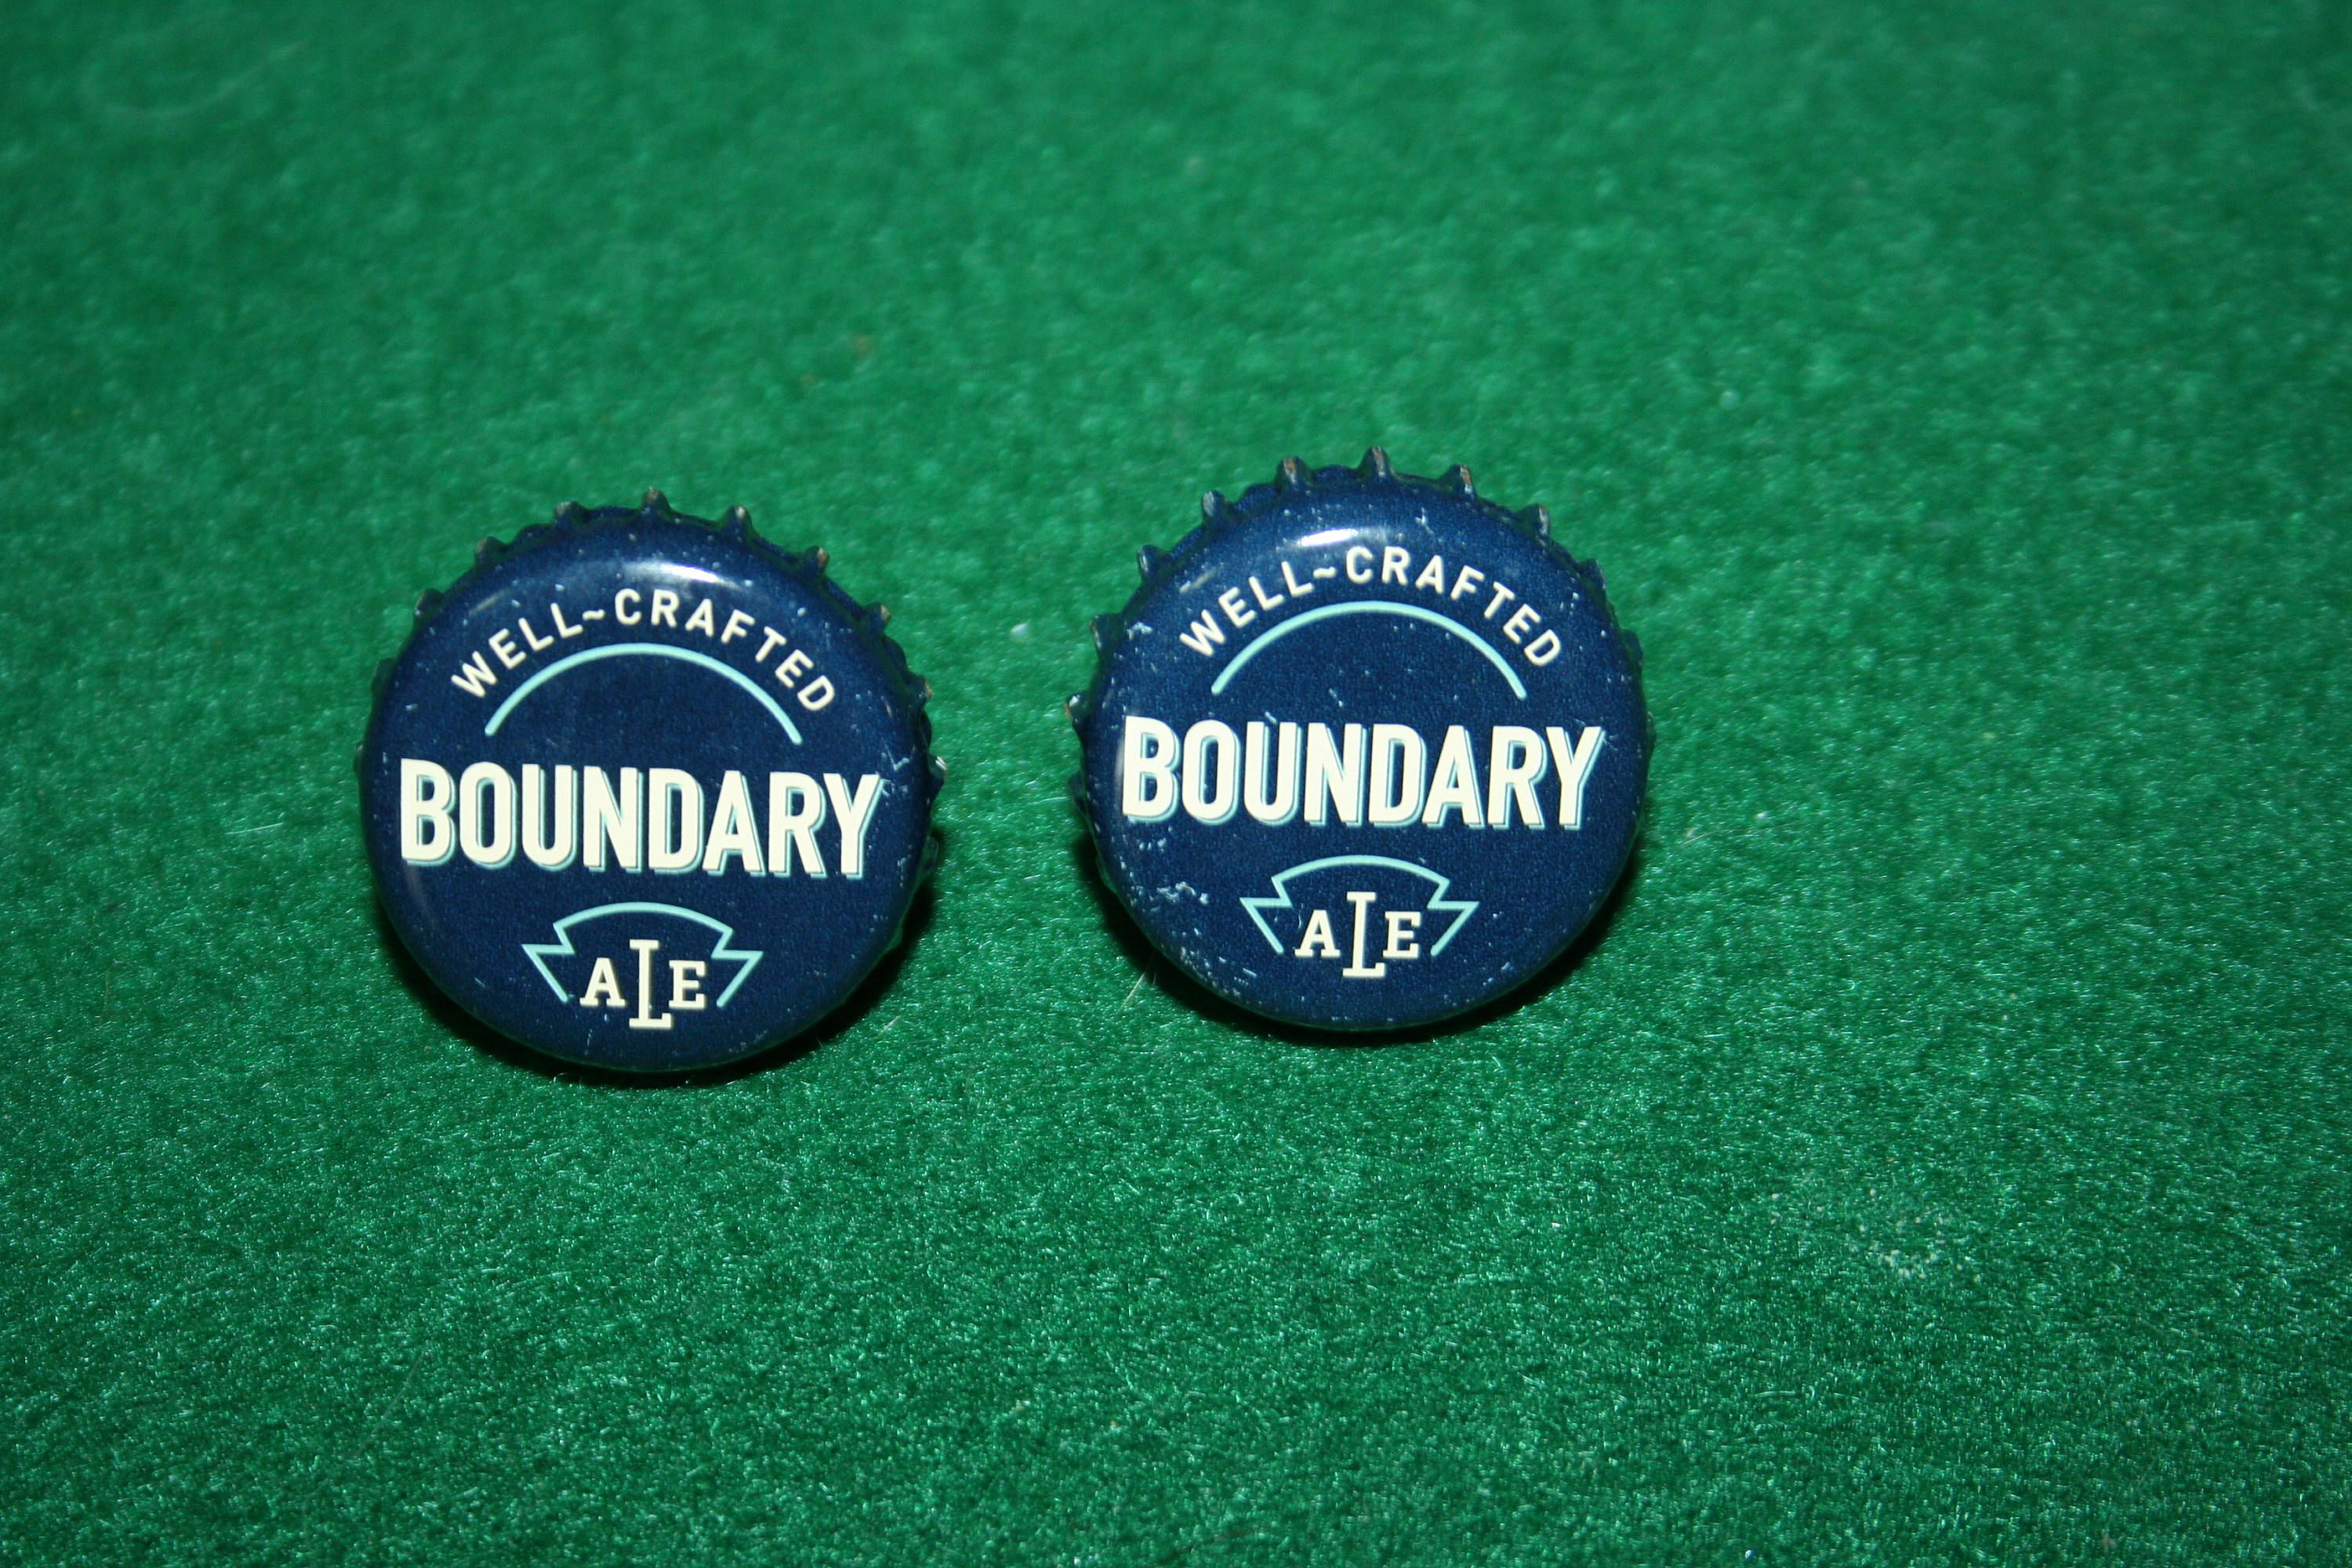 Handcrafted Cuff Links - Boundary Ale Beer Cap with 24 ct Gold Plated Posts by Witmer Enterprises, $15.00 at witmerenterprises.com and also @Etsy